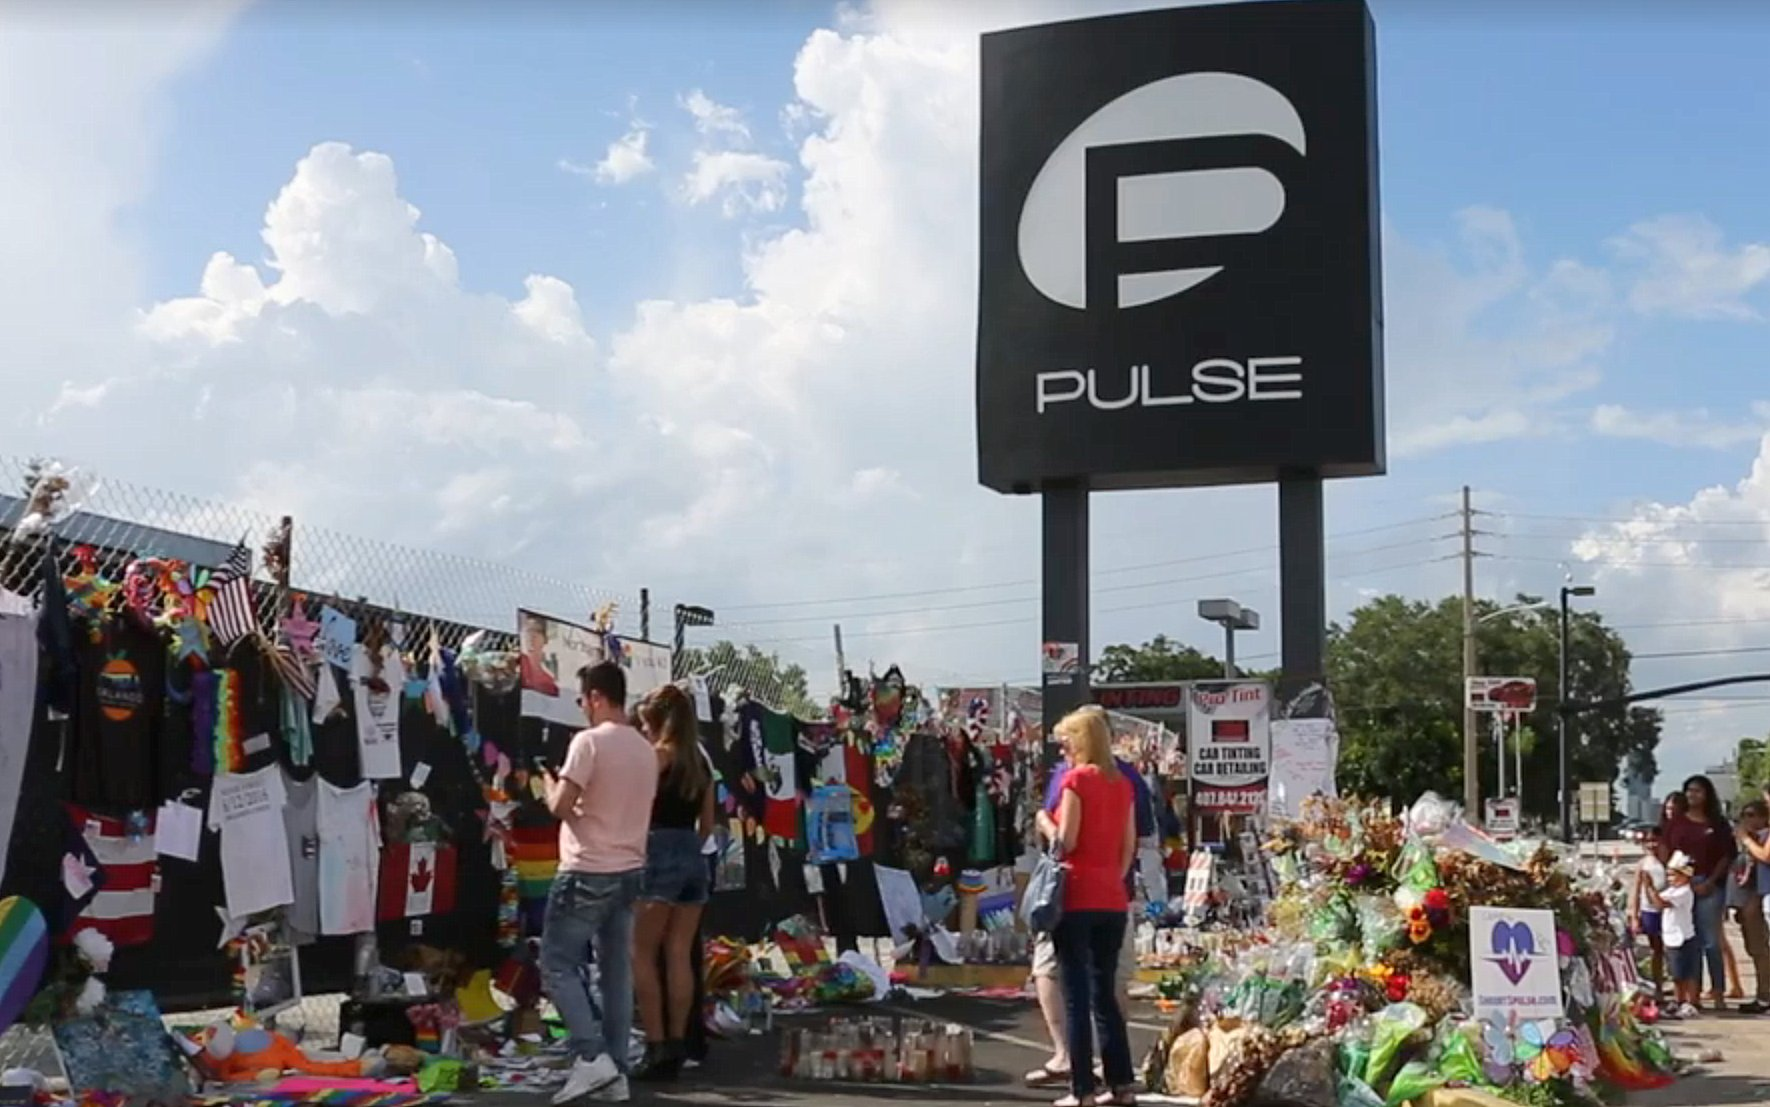 People travel to Pulse nightclub to honor the victims of the massacre